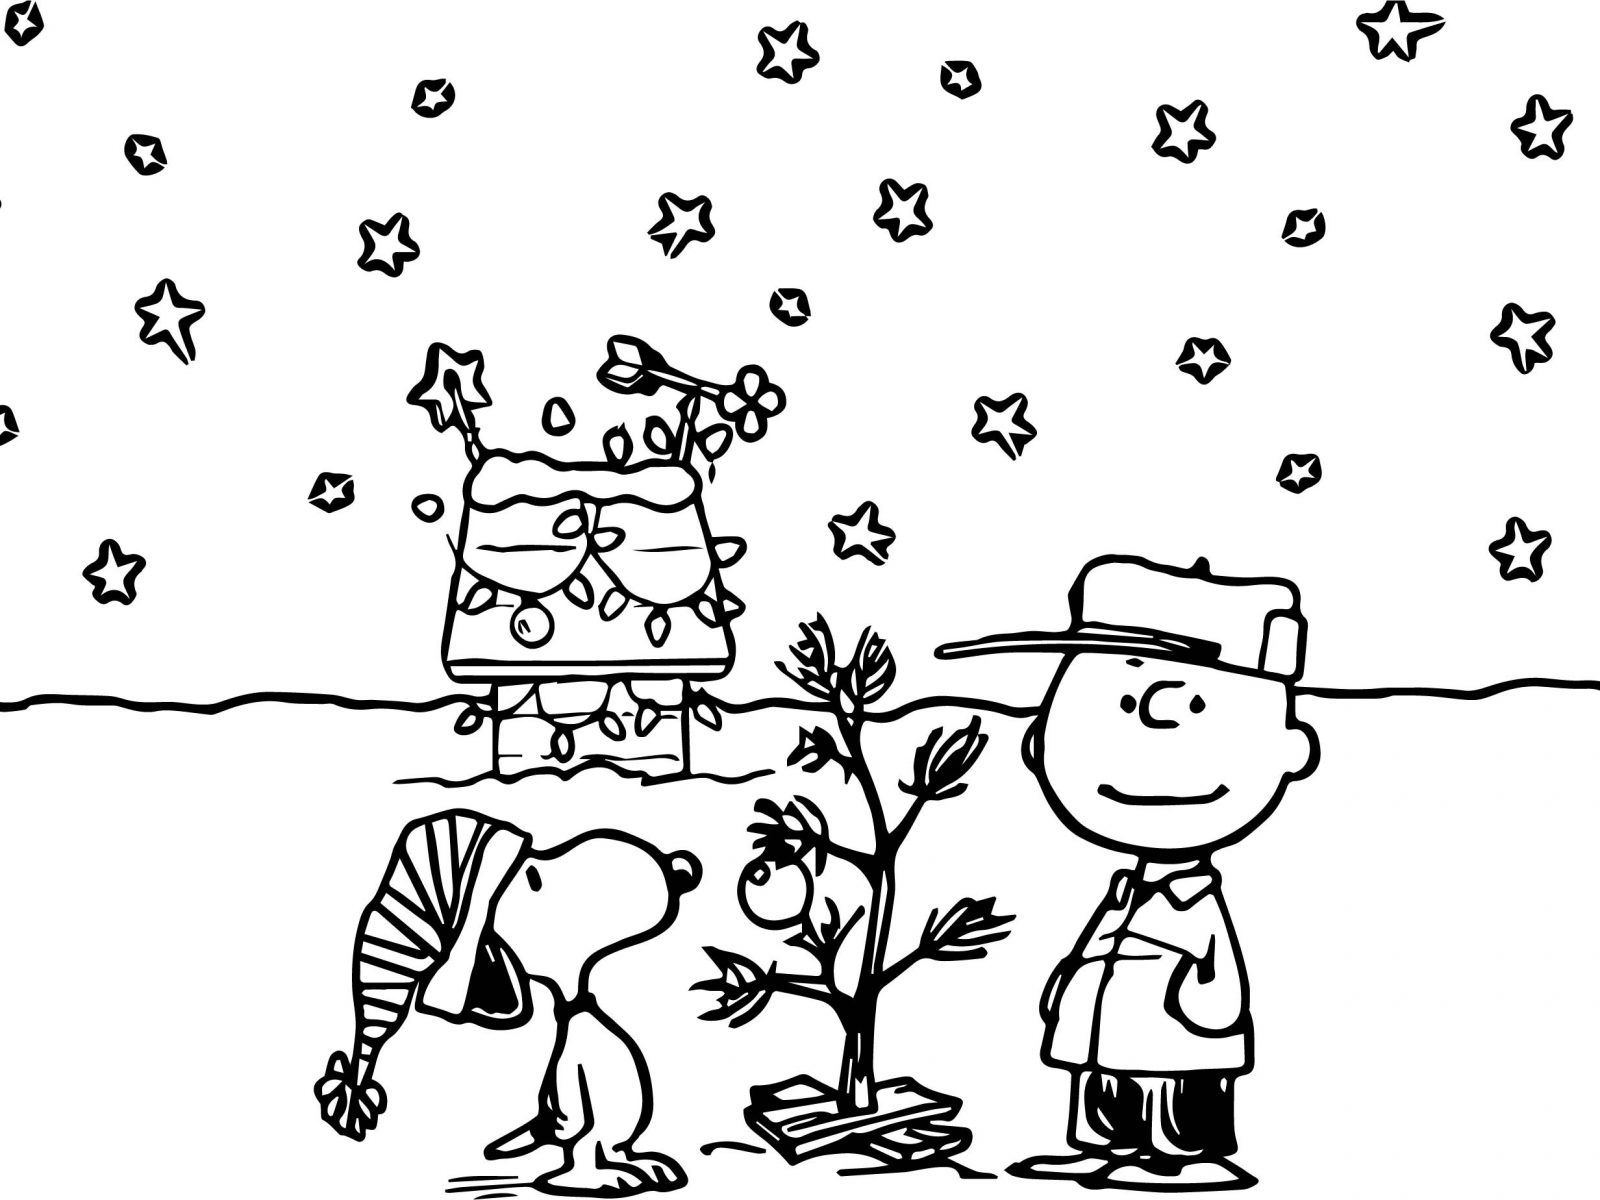 1600x1200 Extraordinary Peanuts Snoopy Gang Coloring Pages Printable Cartoon